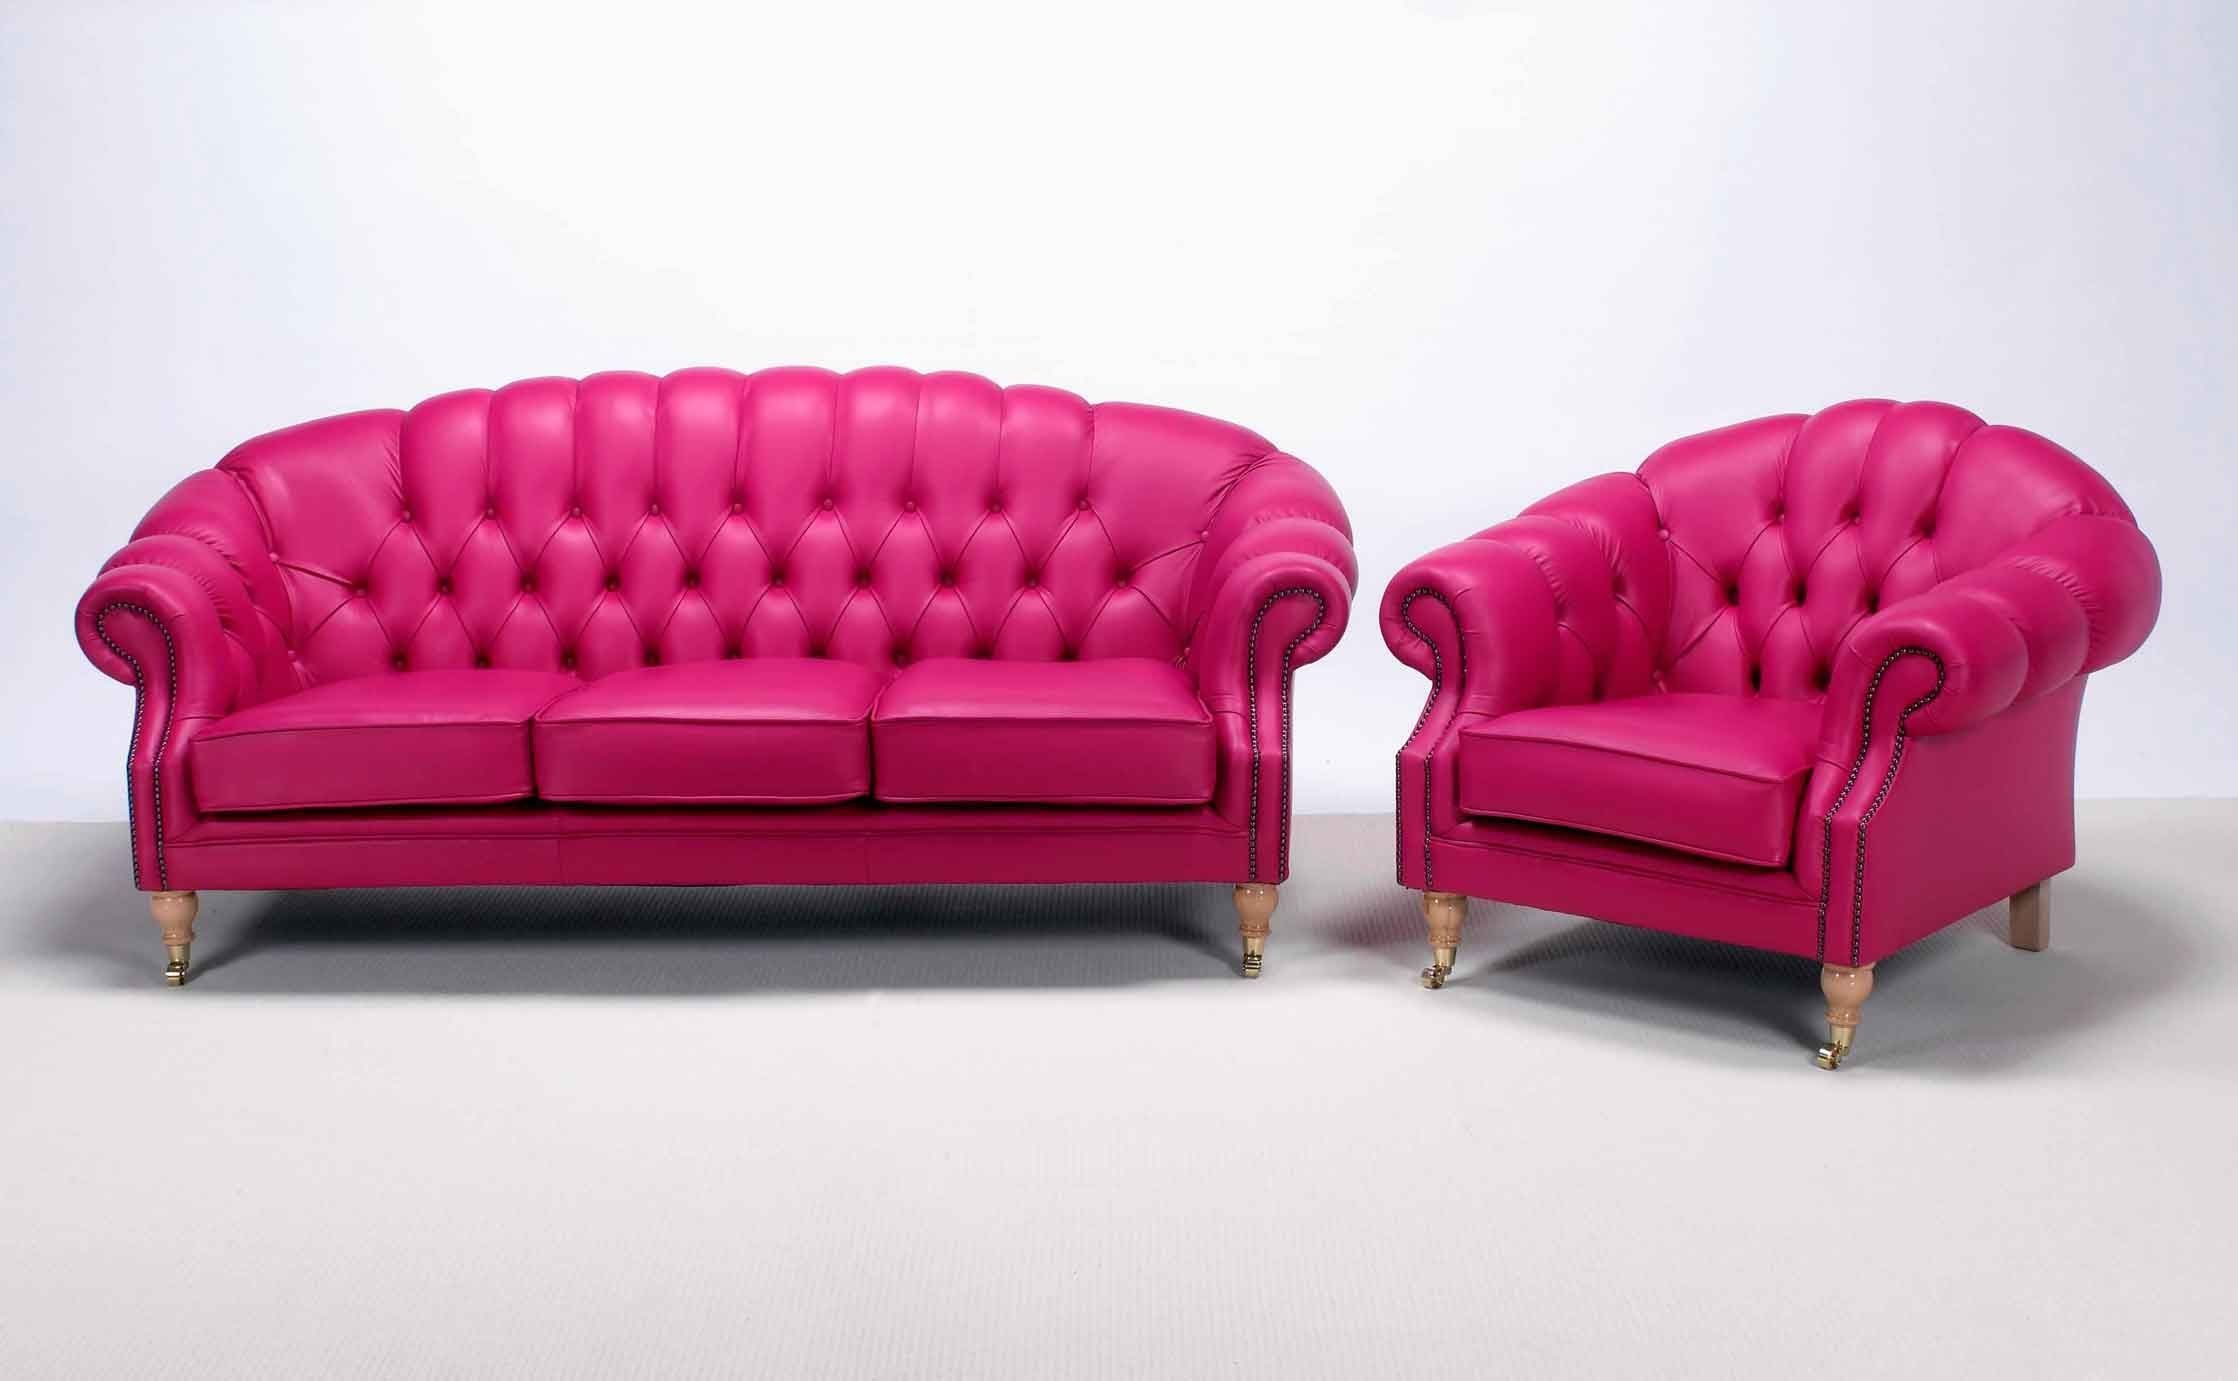 pink leather sofas redo sofa cushions chesterfield 3 seater settee